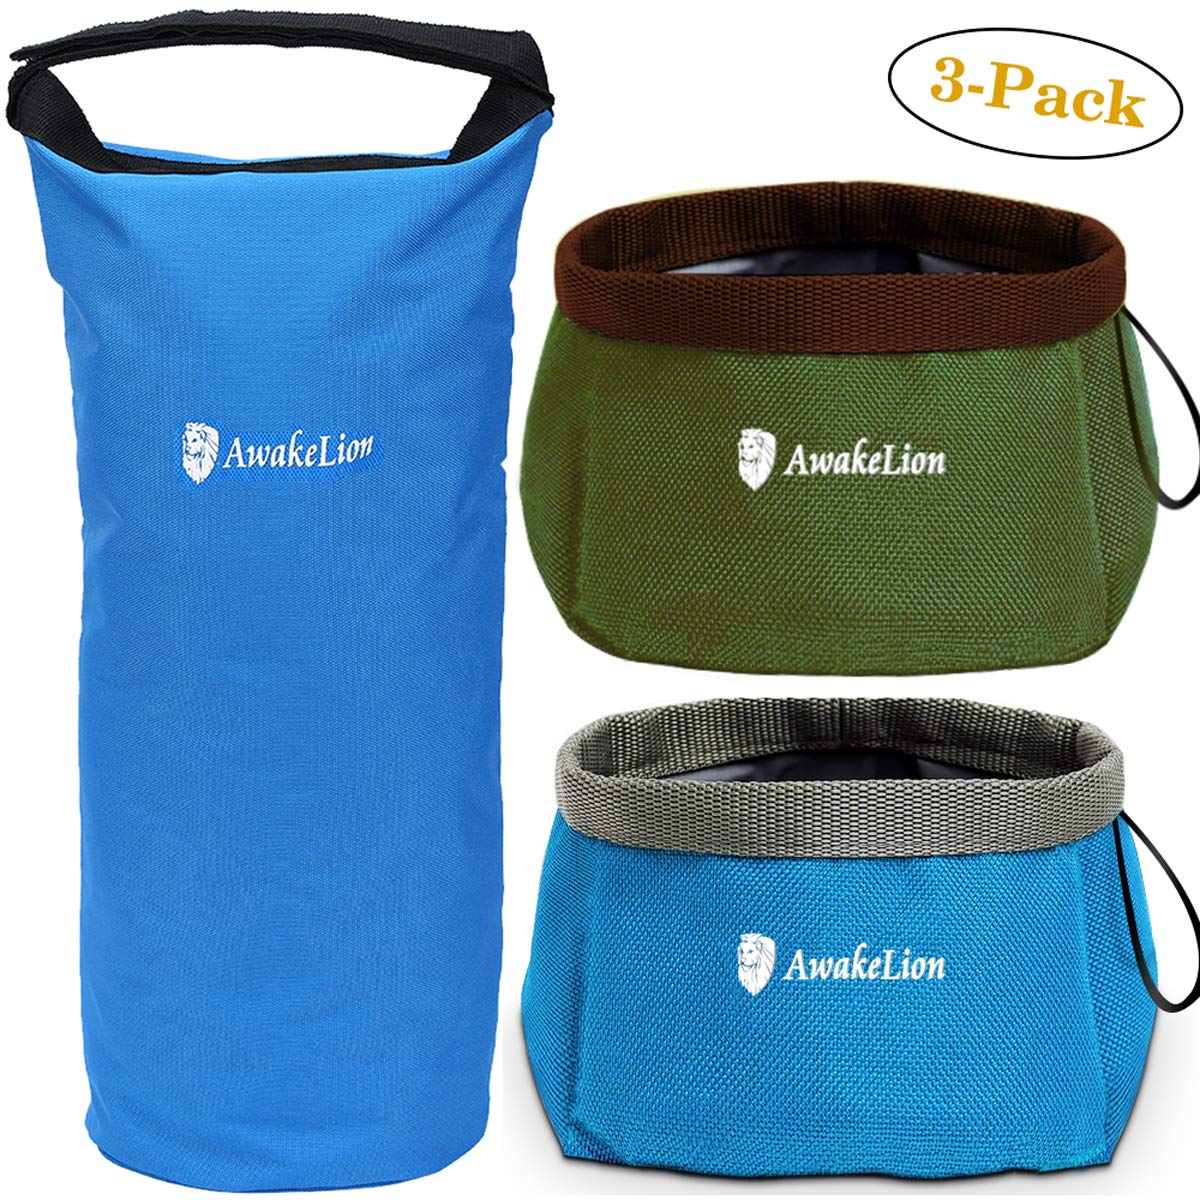 Awakelion Collapsible Portable Carrier Perfect